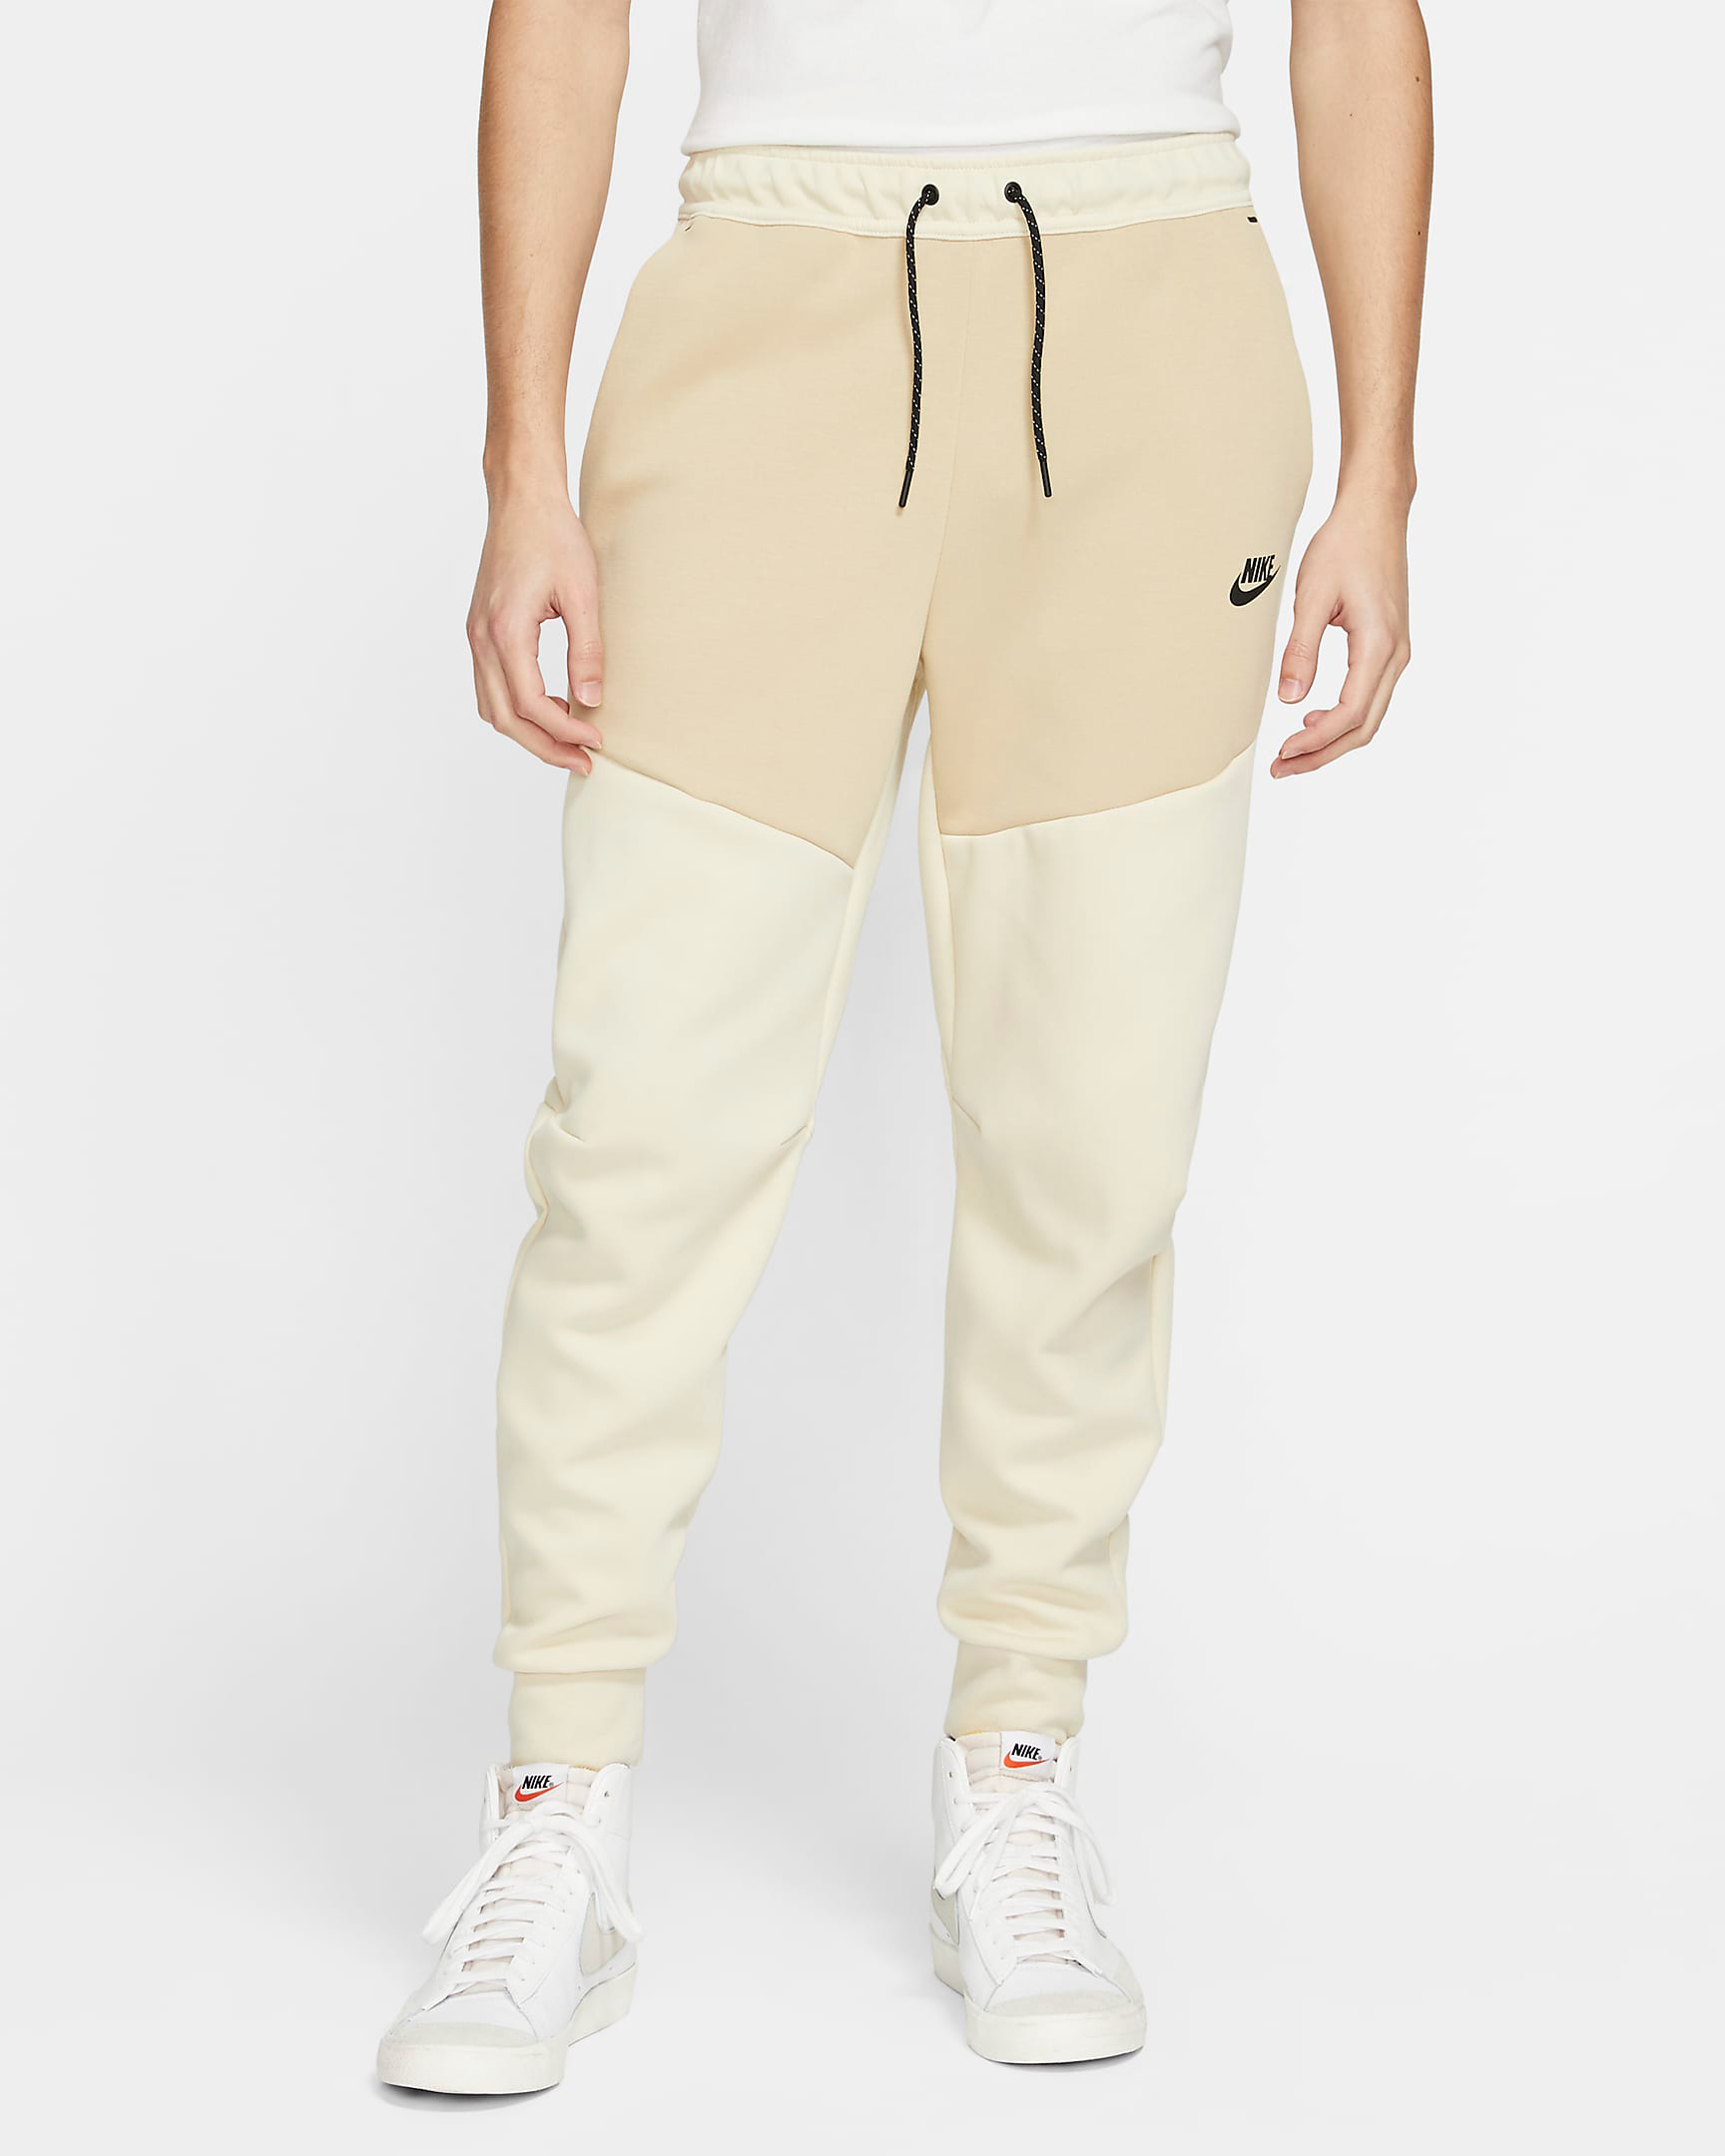 nike-tech-fleece-joggers-coconut-milk-1